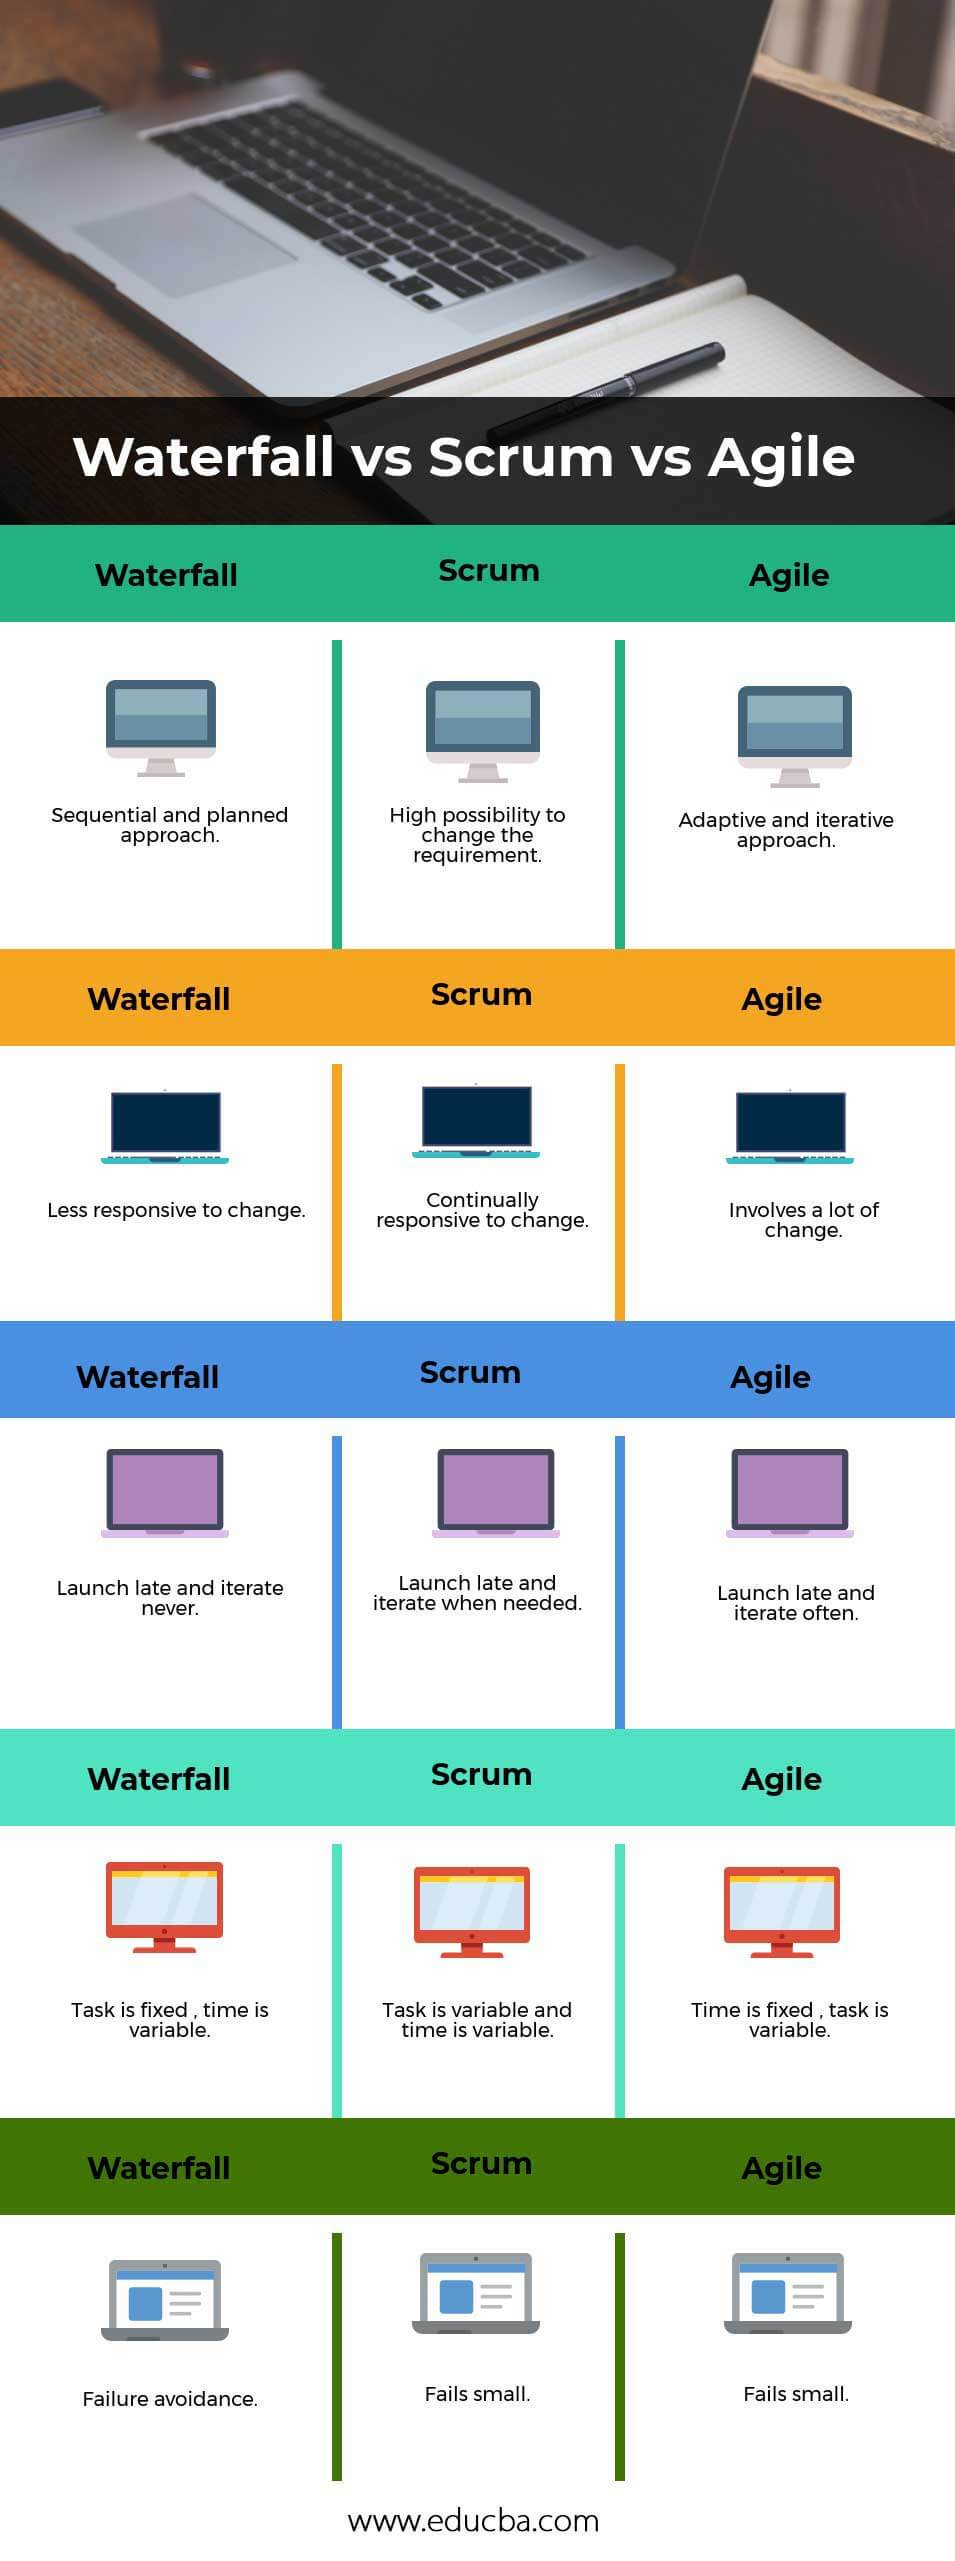 Waterfall-vs-Scrum-vs-Agile info